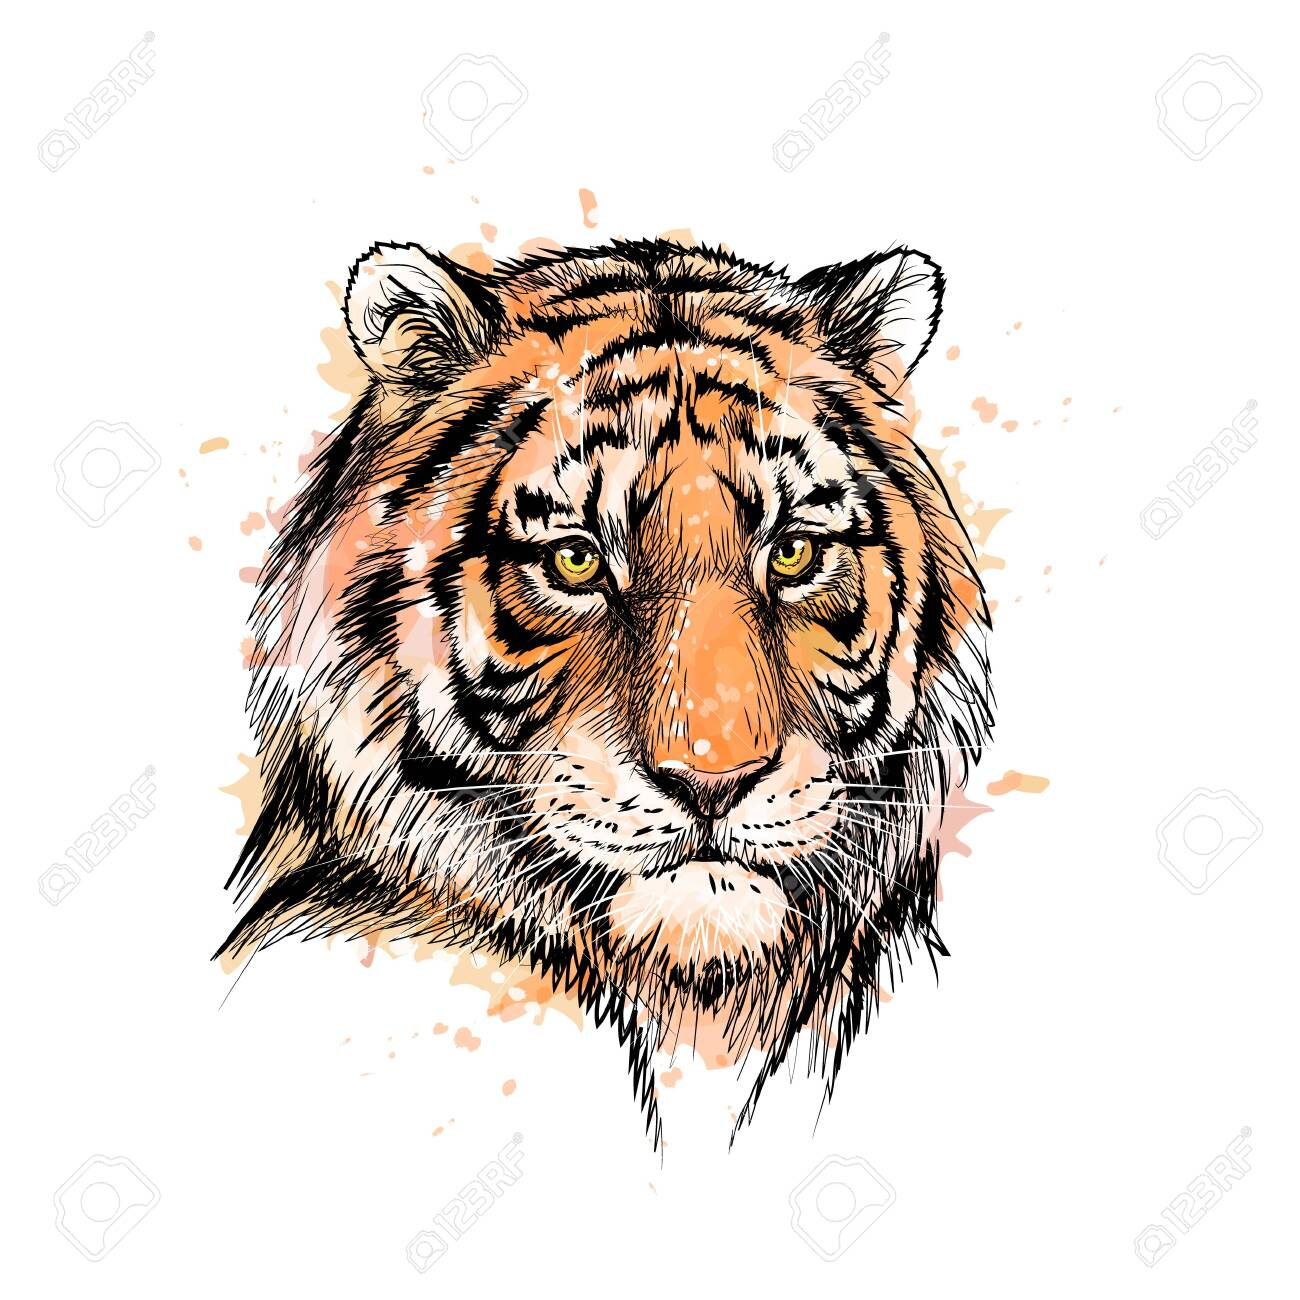 Portrait of a tiger head from a splash of watercolor - 130825664